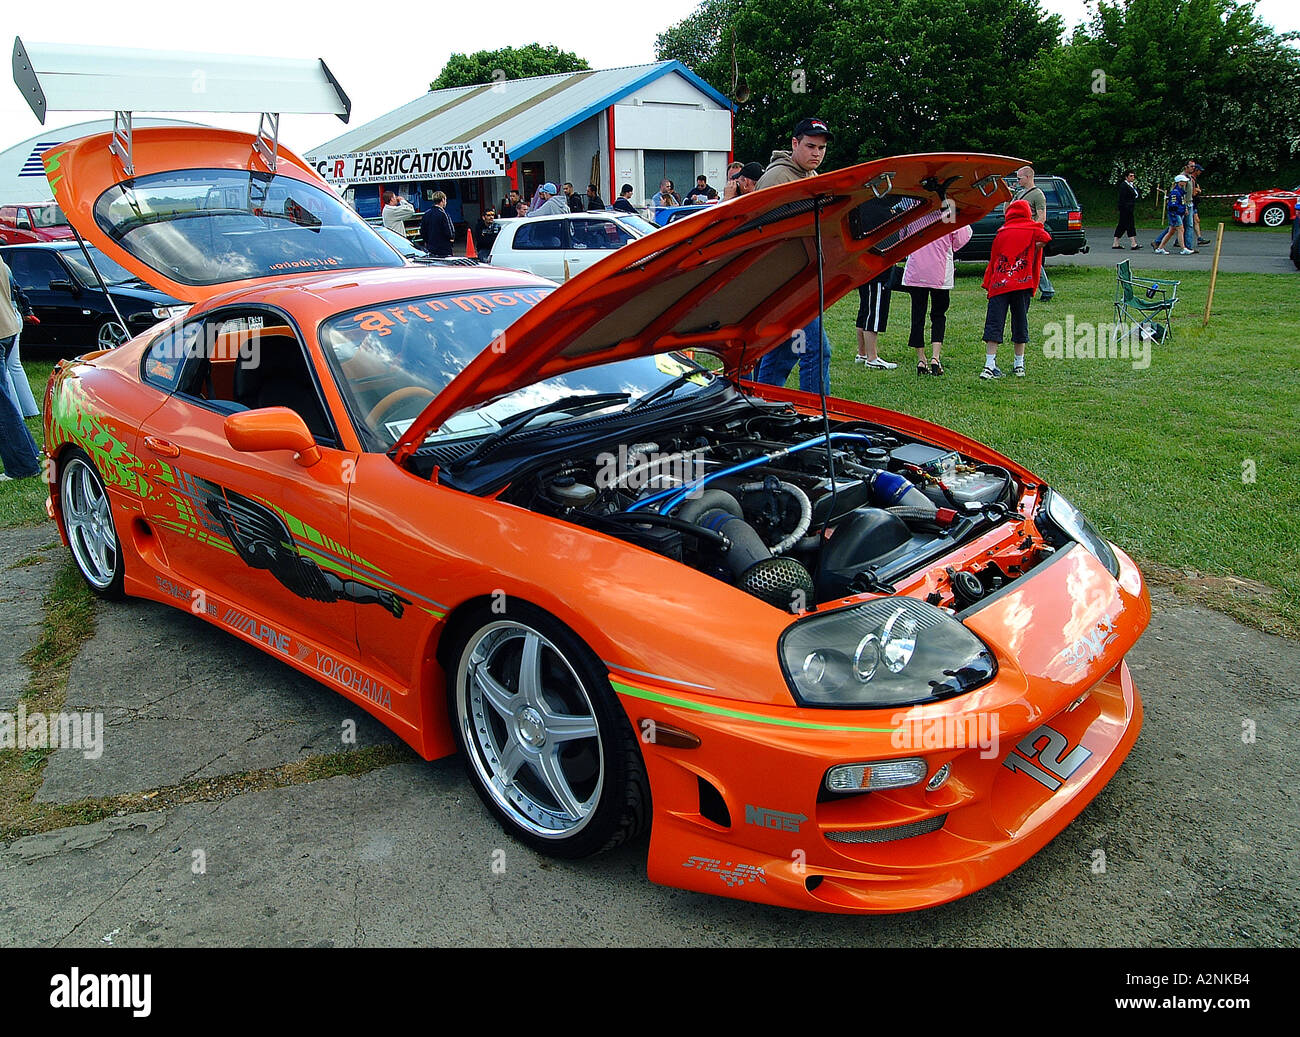 Fast furious street racer performance car - Stock Image